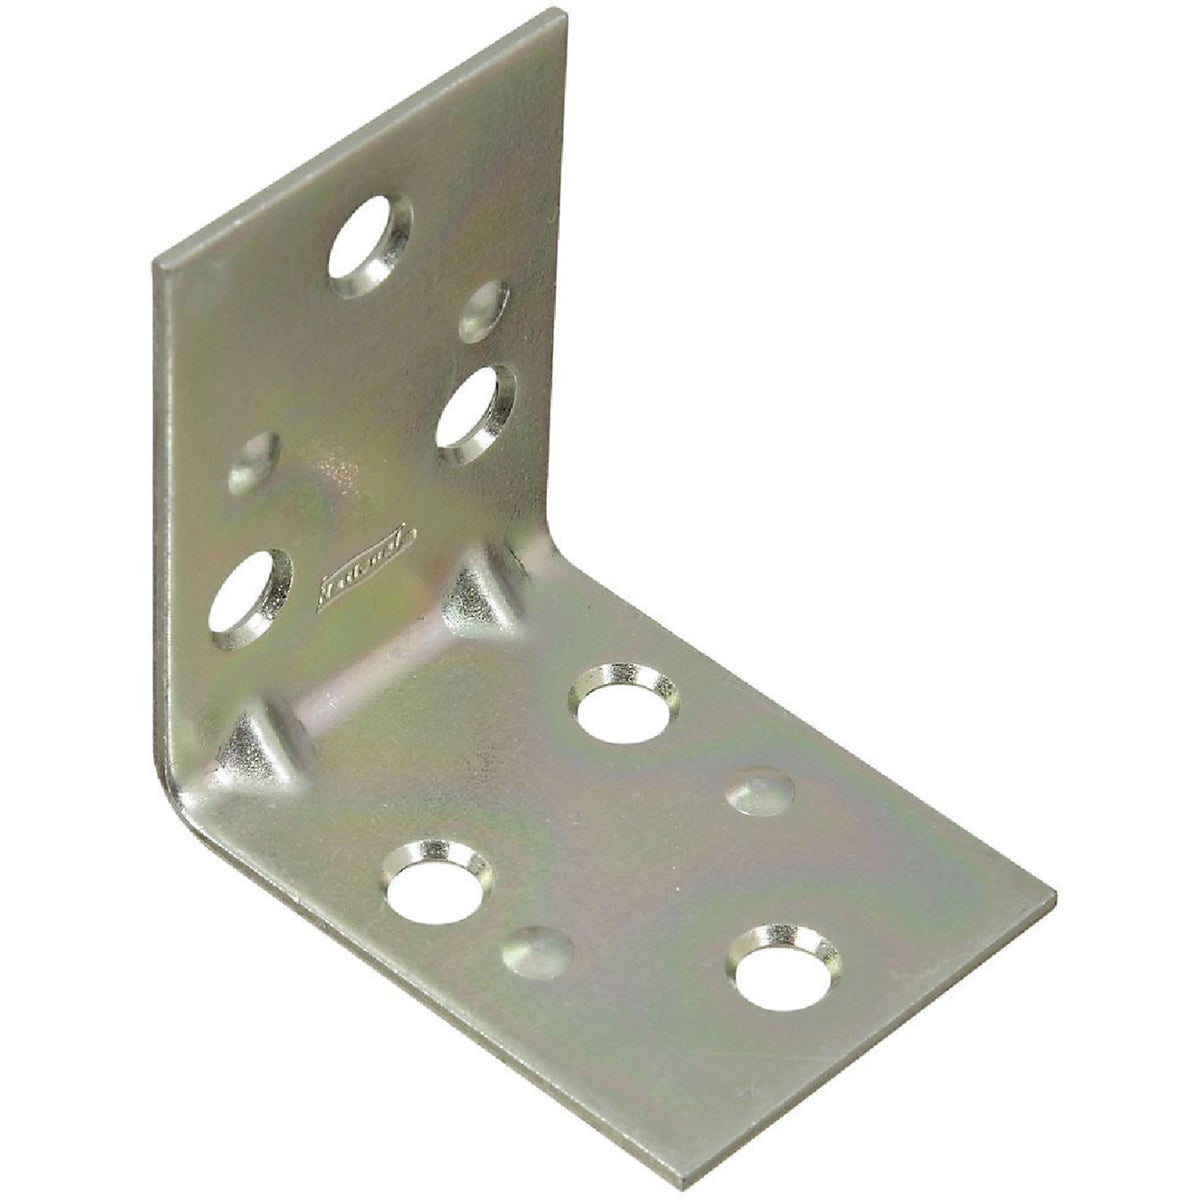 2X1-1/2 DBL CORNER BRACE - N285-528 by National Mfg Co